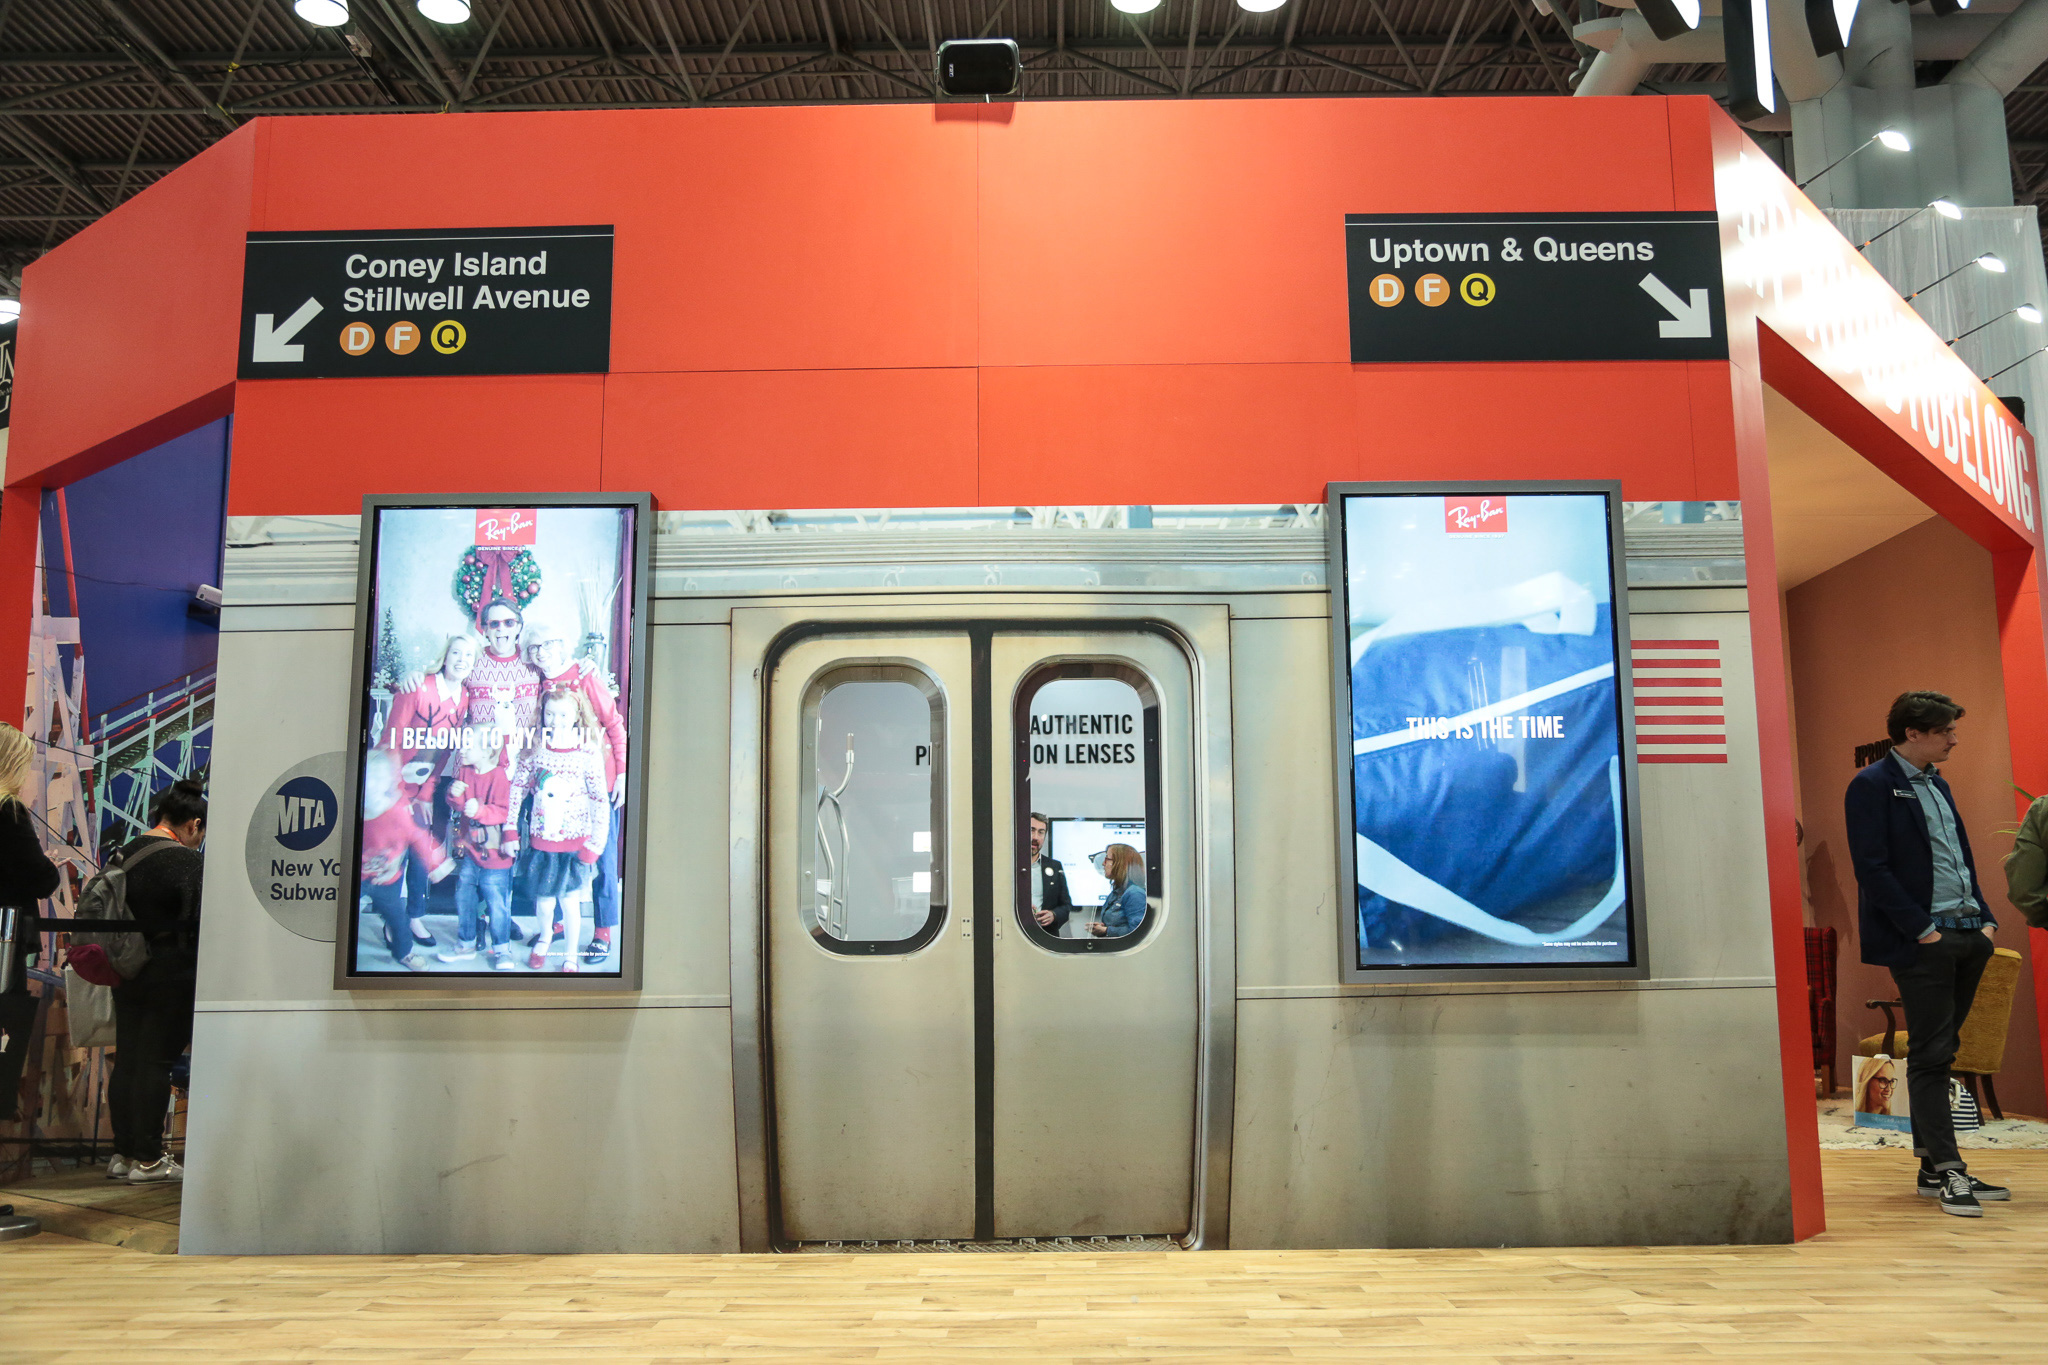 Ray Ban Event - New York Subway Station Photo